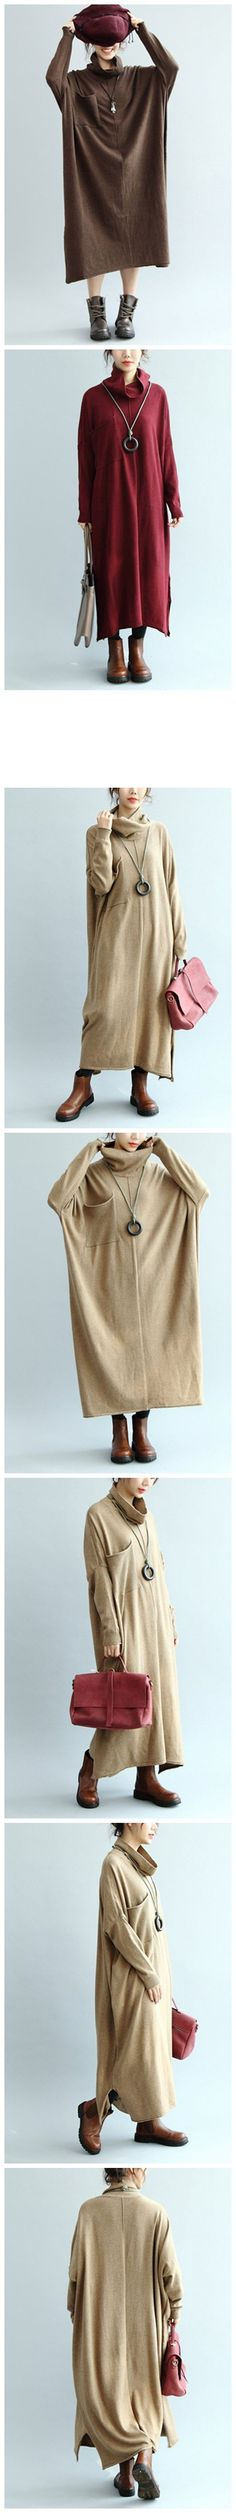 Women High Neck Sweater Dress, Maxi Raglan Sleeve Dress Q5138  Q5138Khaki